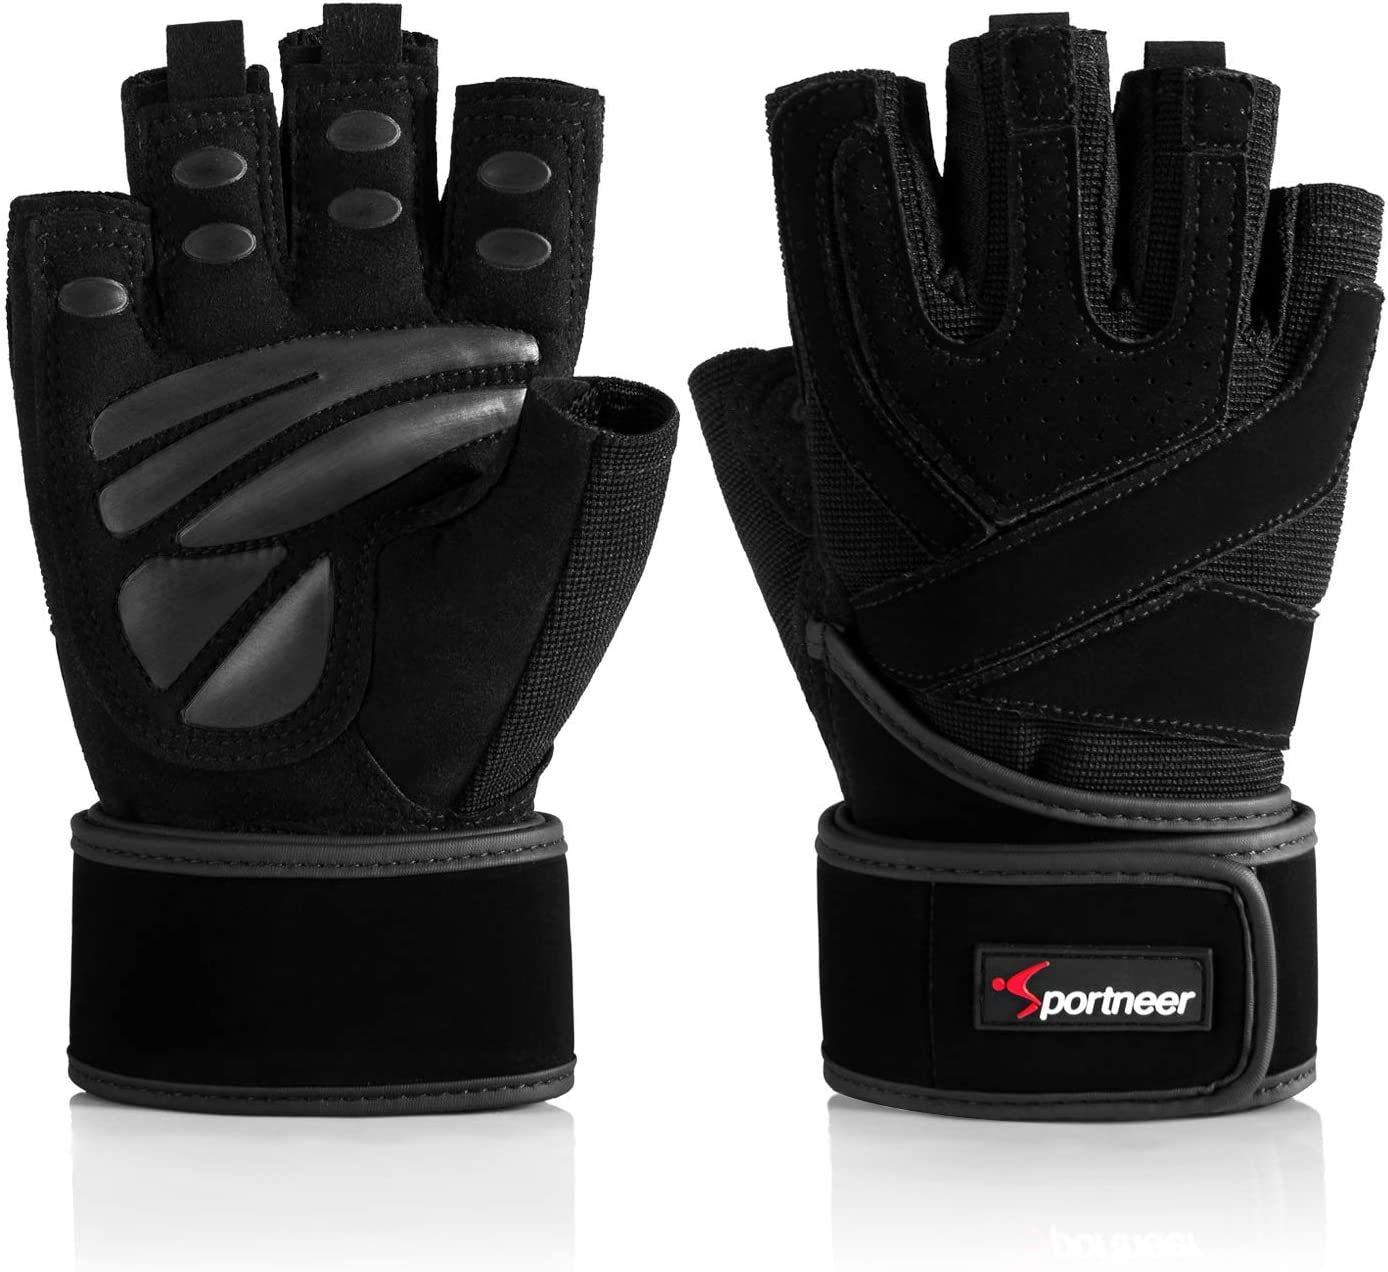 Crossfit,Weightlifting Black//White or Black Premium Quality Materials. Muscle Composition Gym Gloves with Wrist Support for Gym Workout